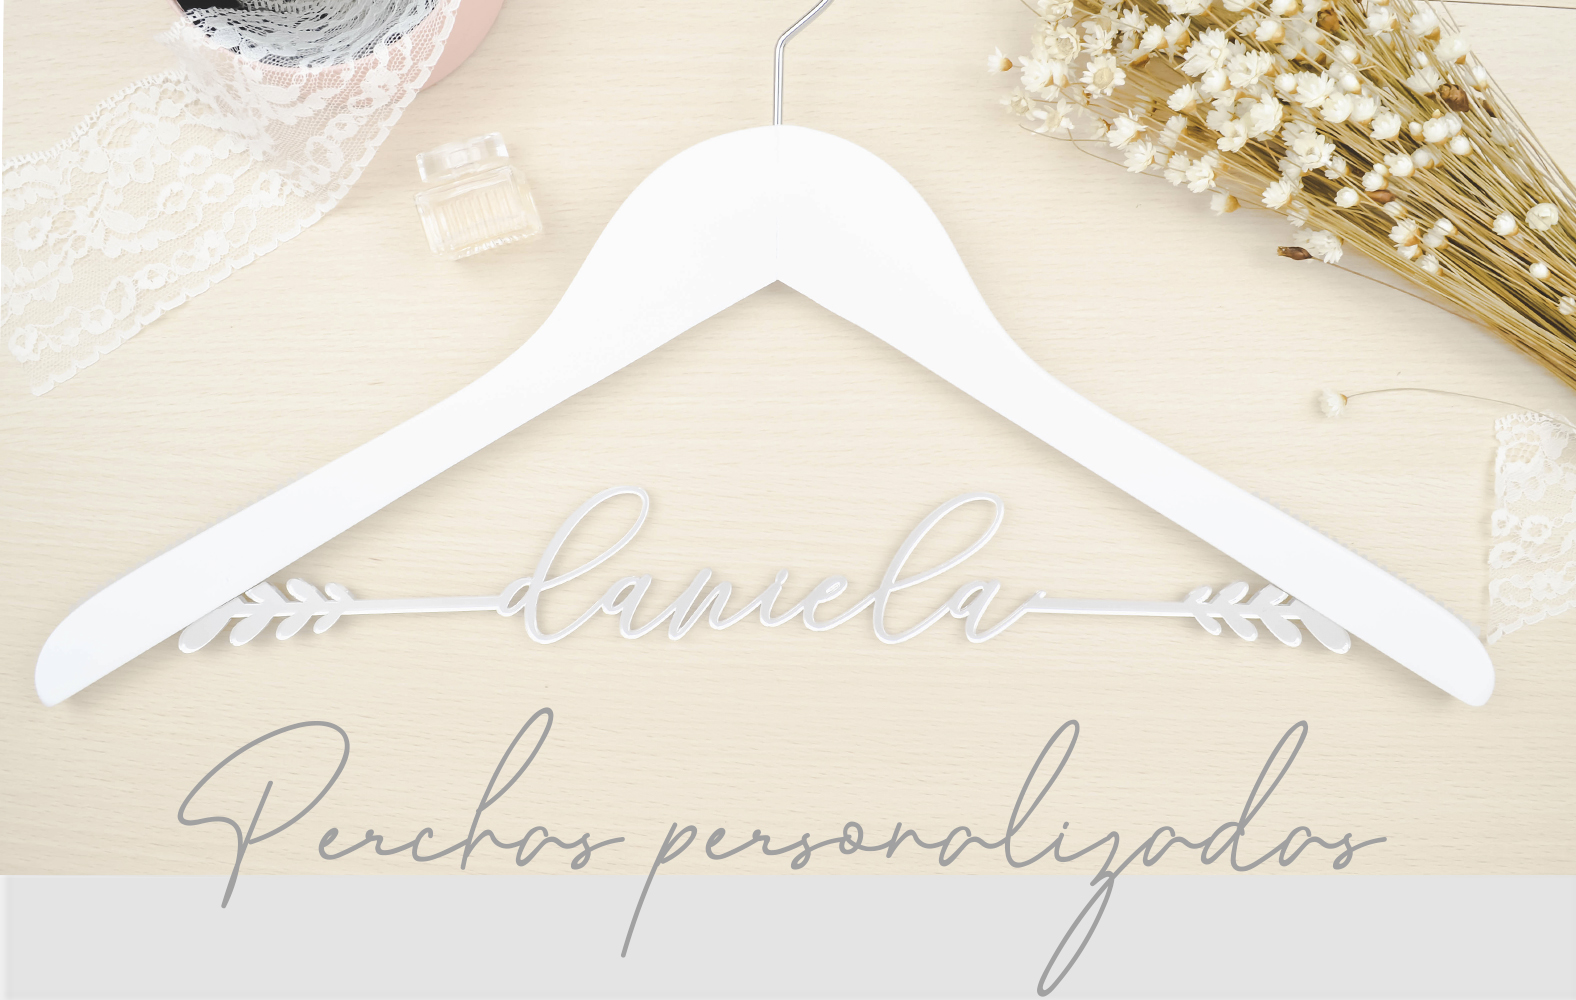 Perchas personalizadas | Lovely Mint